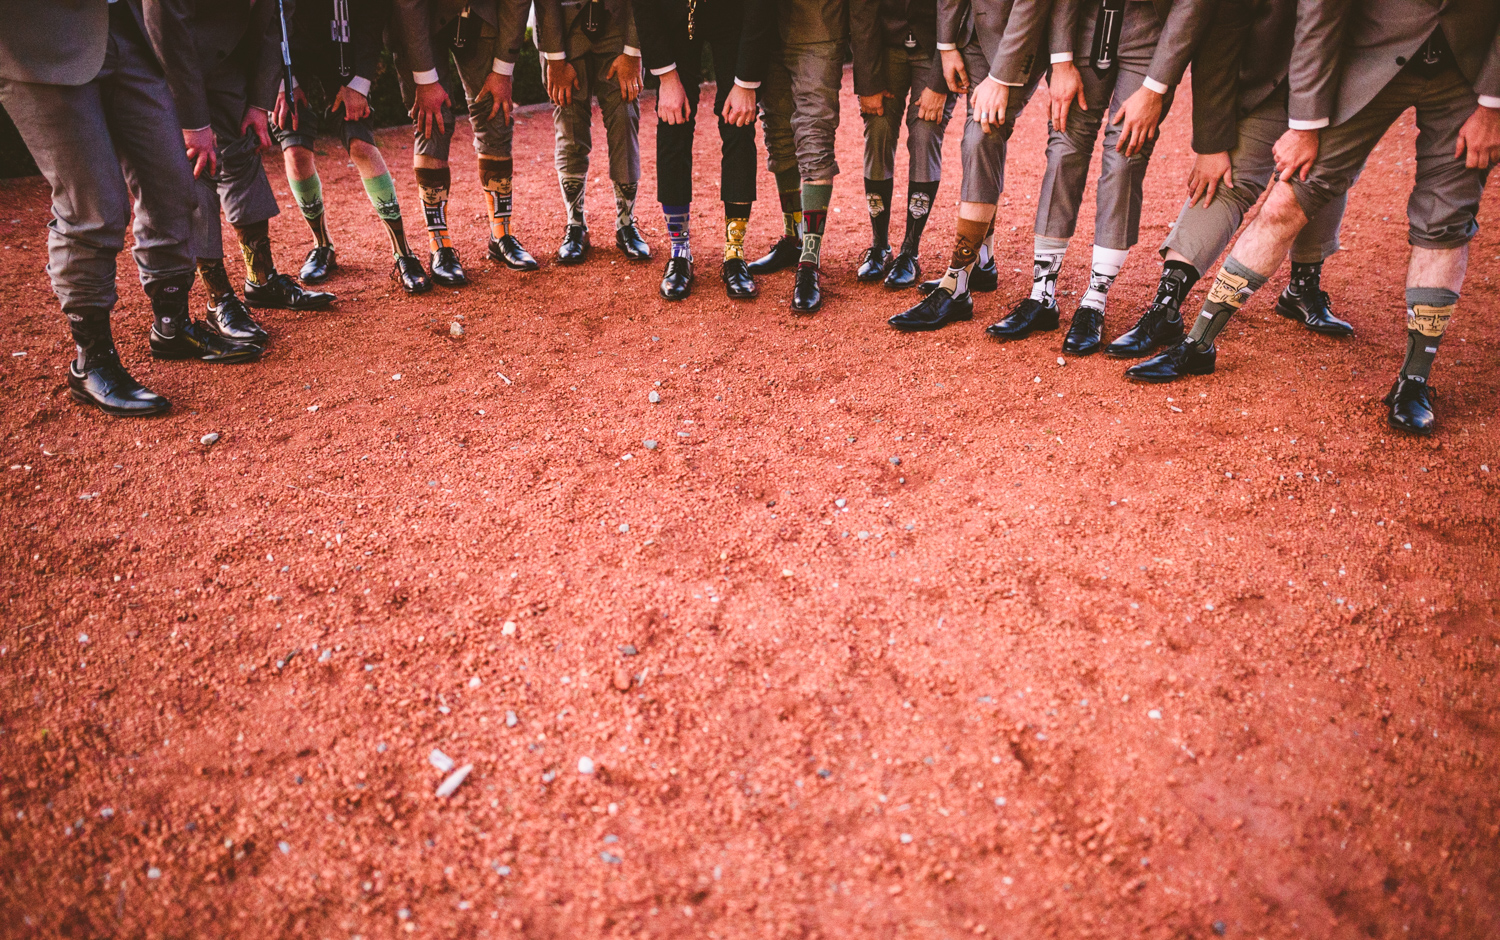 025 - groomsmen showing off their star wars socks.jpg